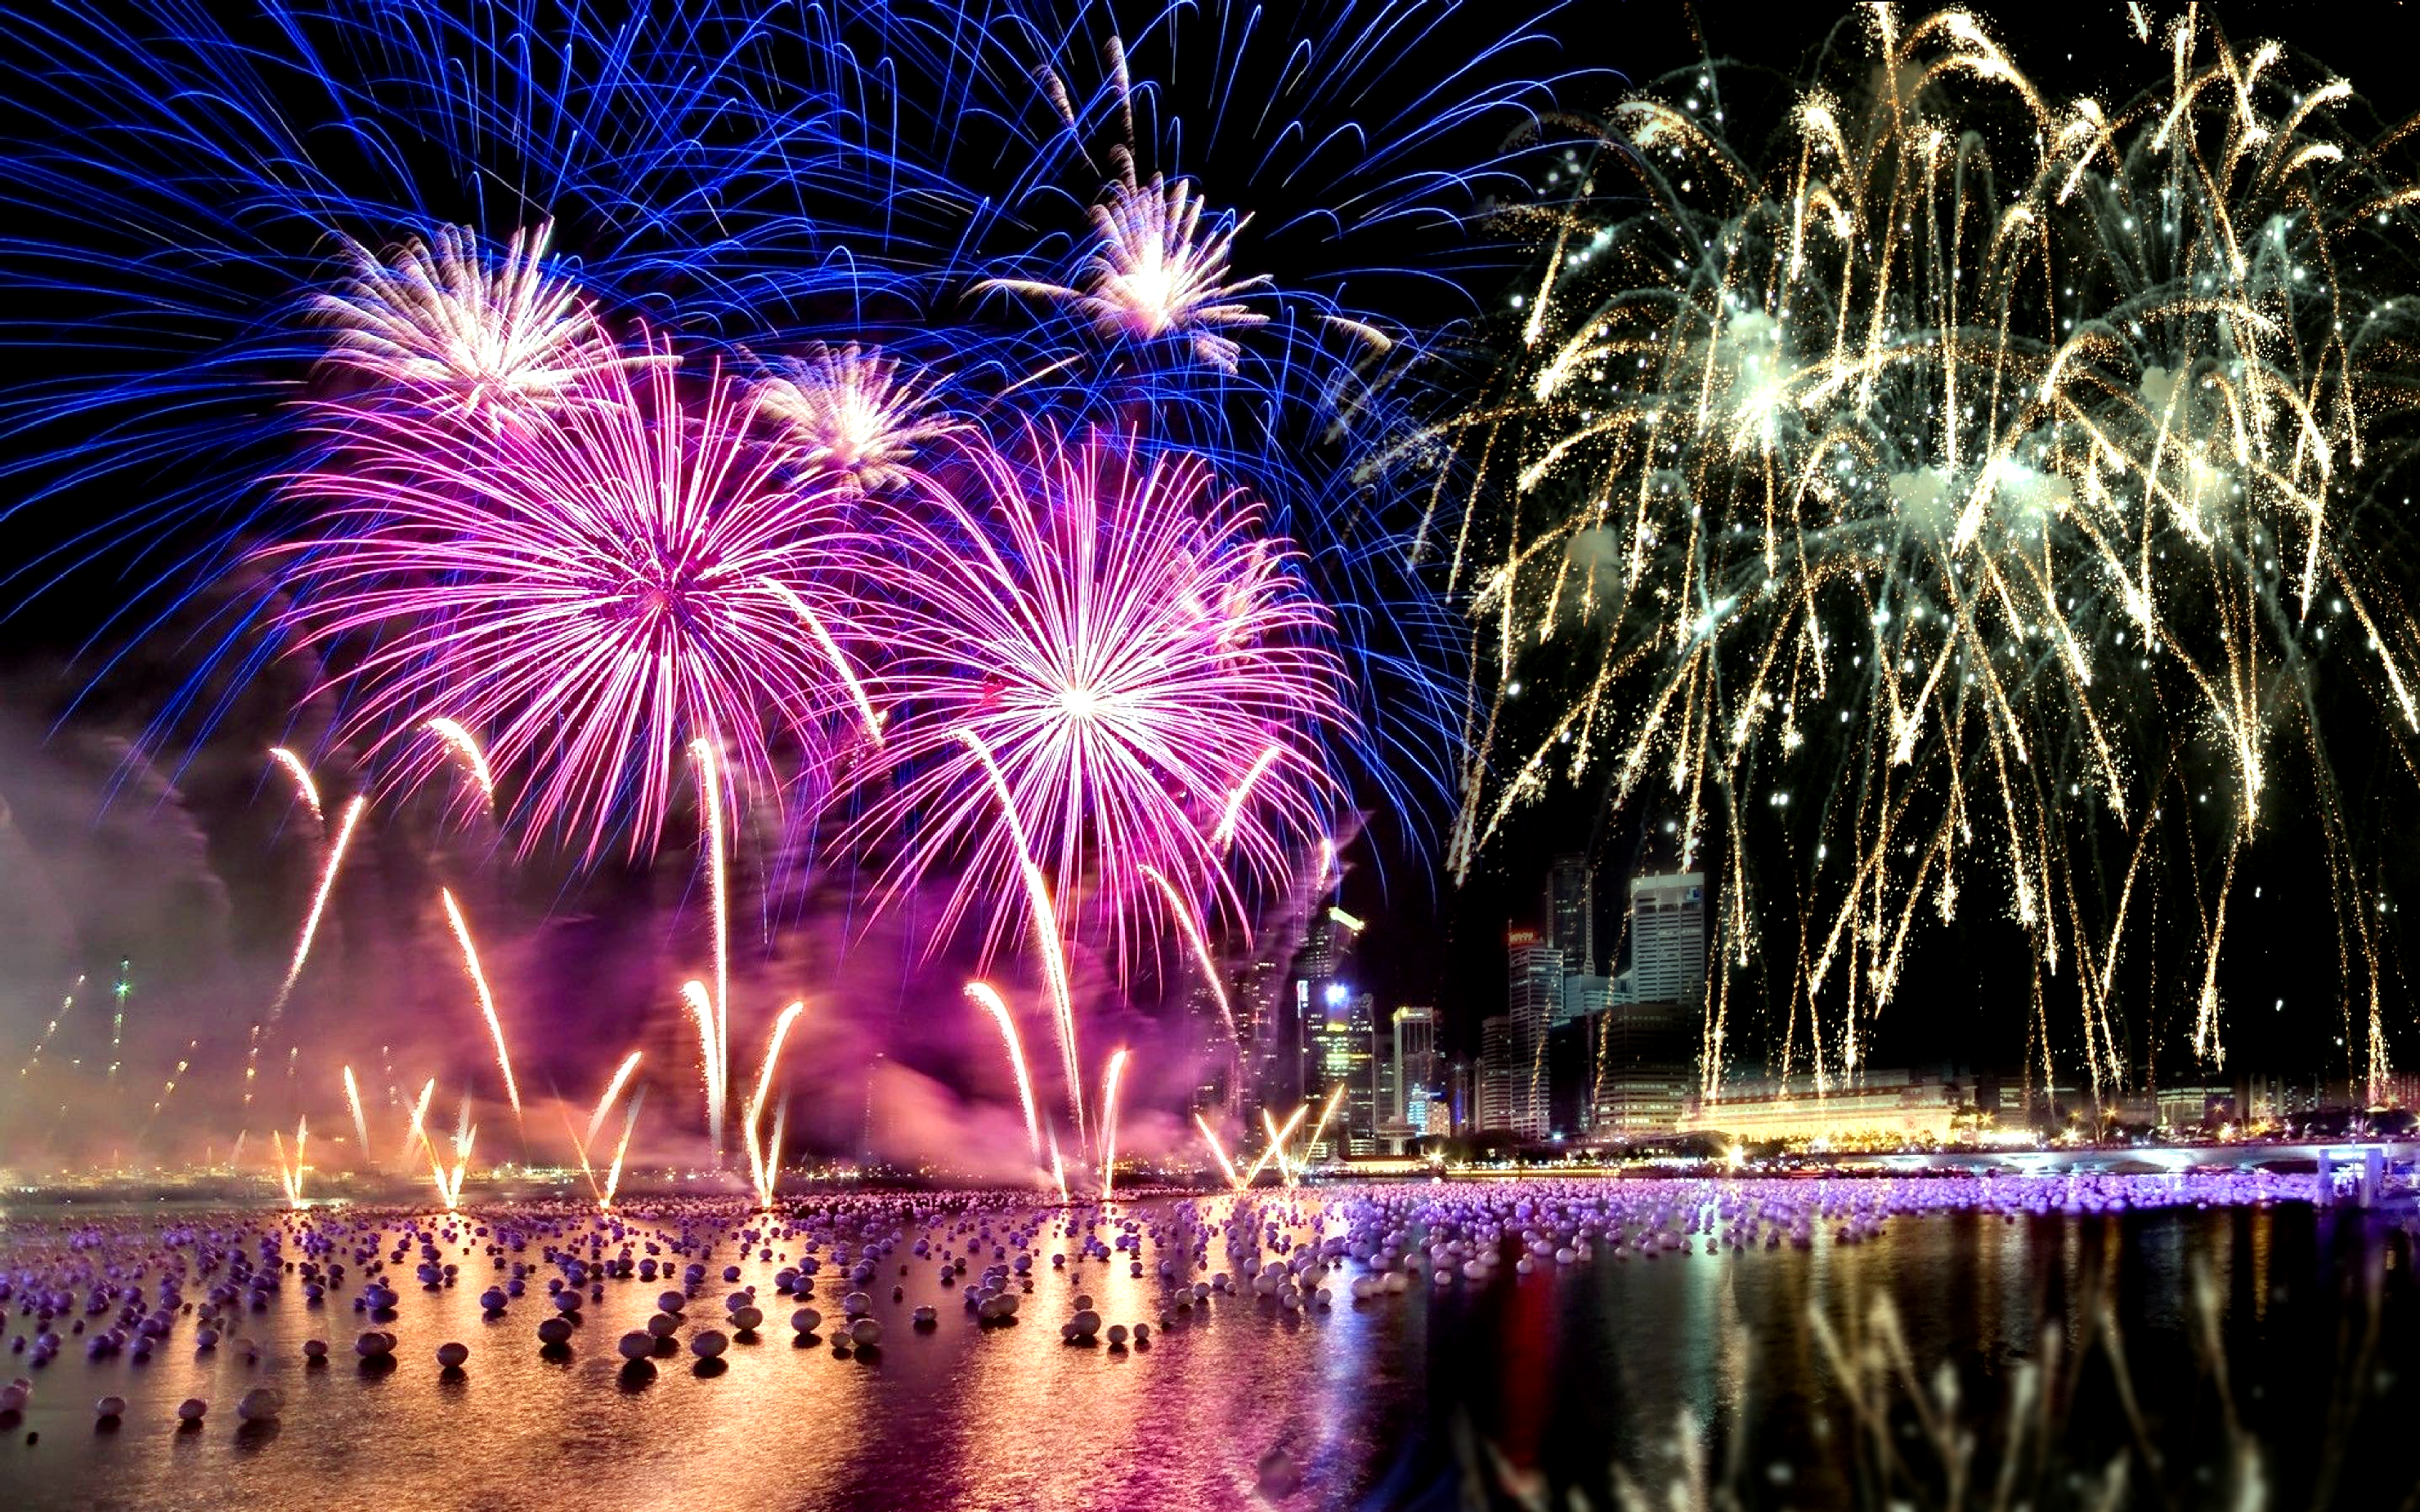 Fireworks Hd Wallpaper Search More High Definition 1080p 720p Hd 2960x1850